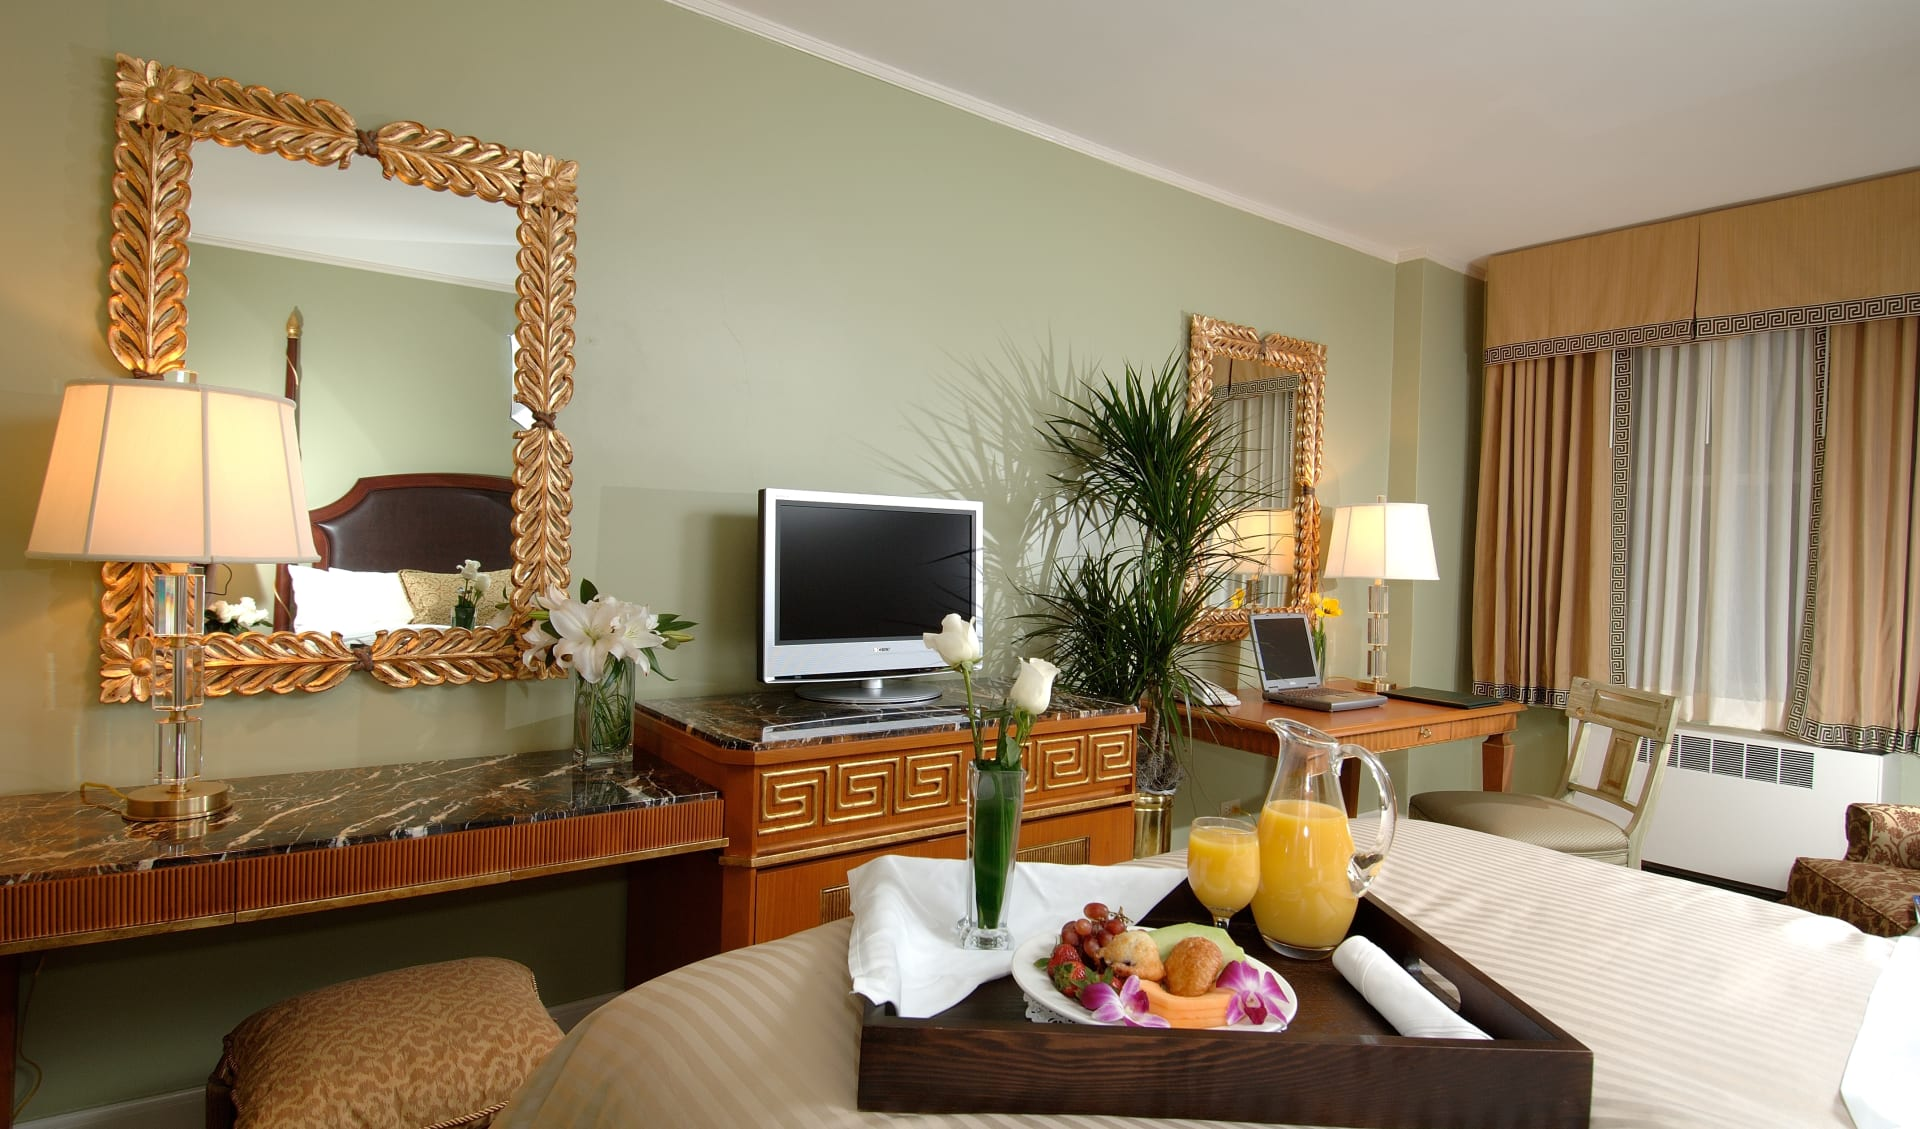 Francis Marion Hotel in Charleston: Francis Marion Hotel - Traditional Hotelzimmer